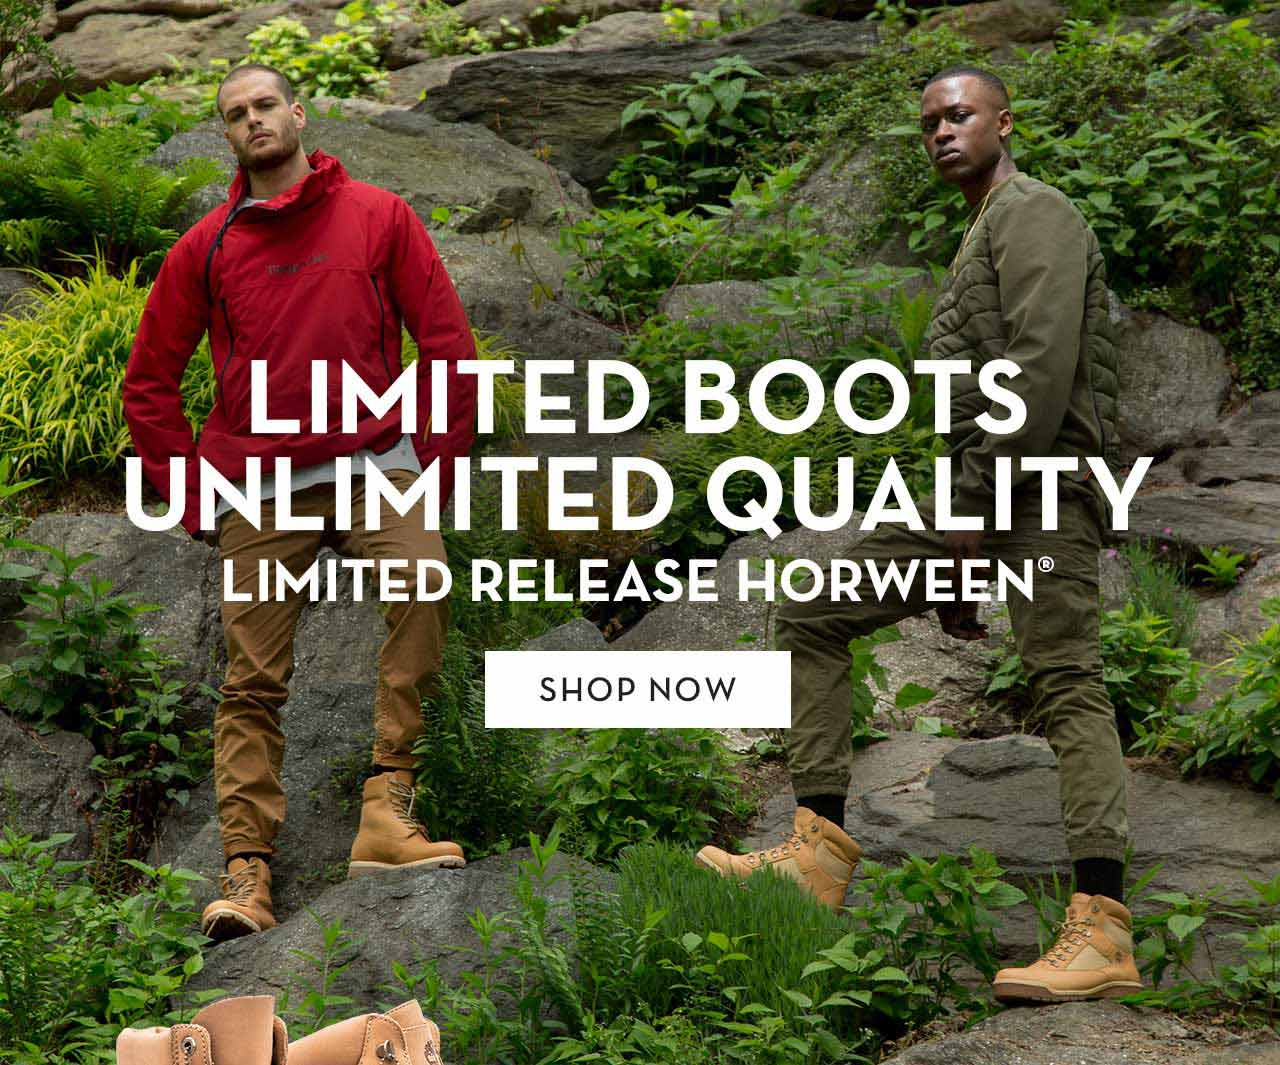 Limited Boots Unlimited Quality Limited Release Horween® Shop Now